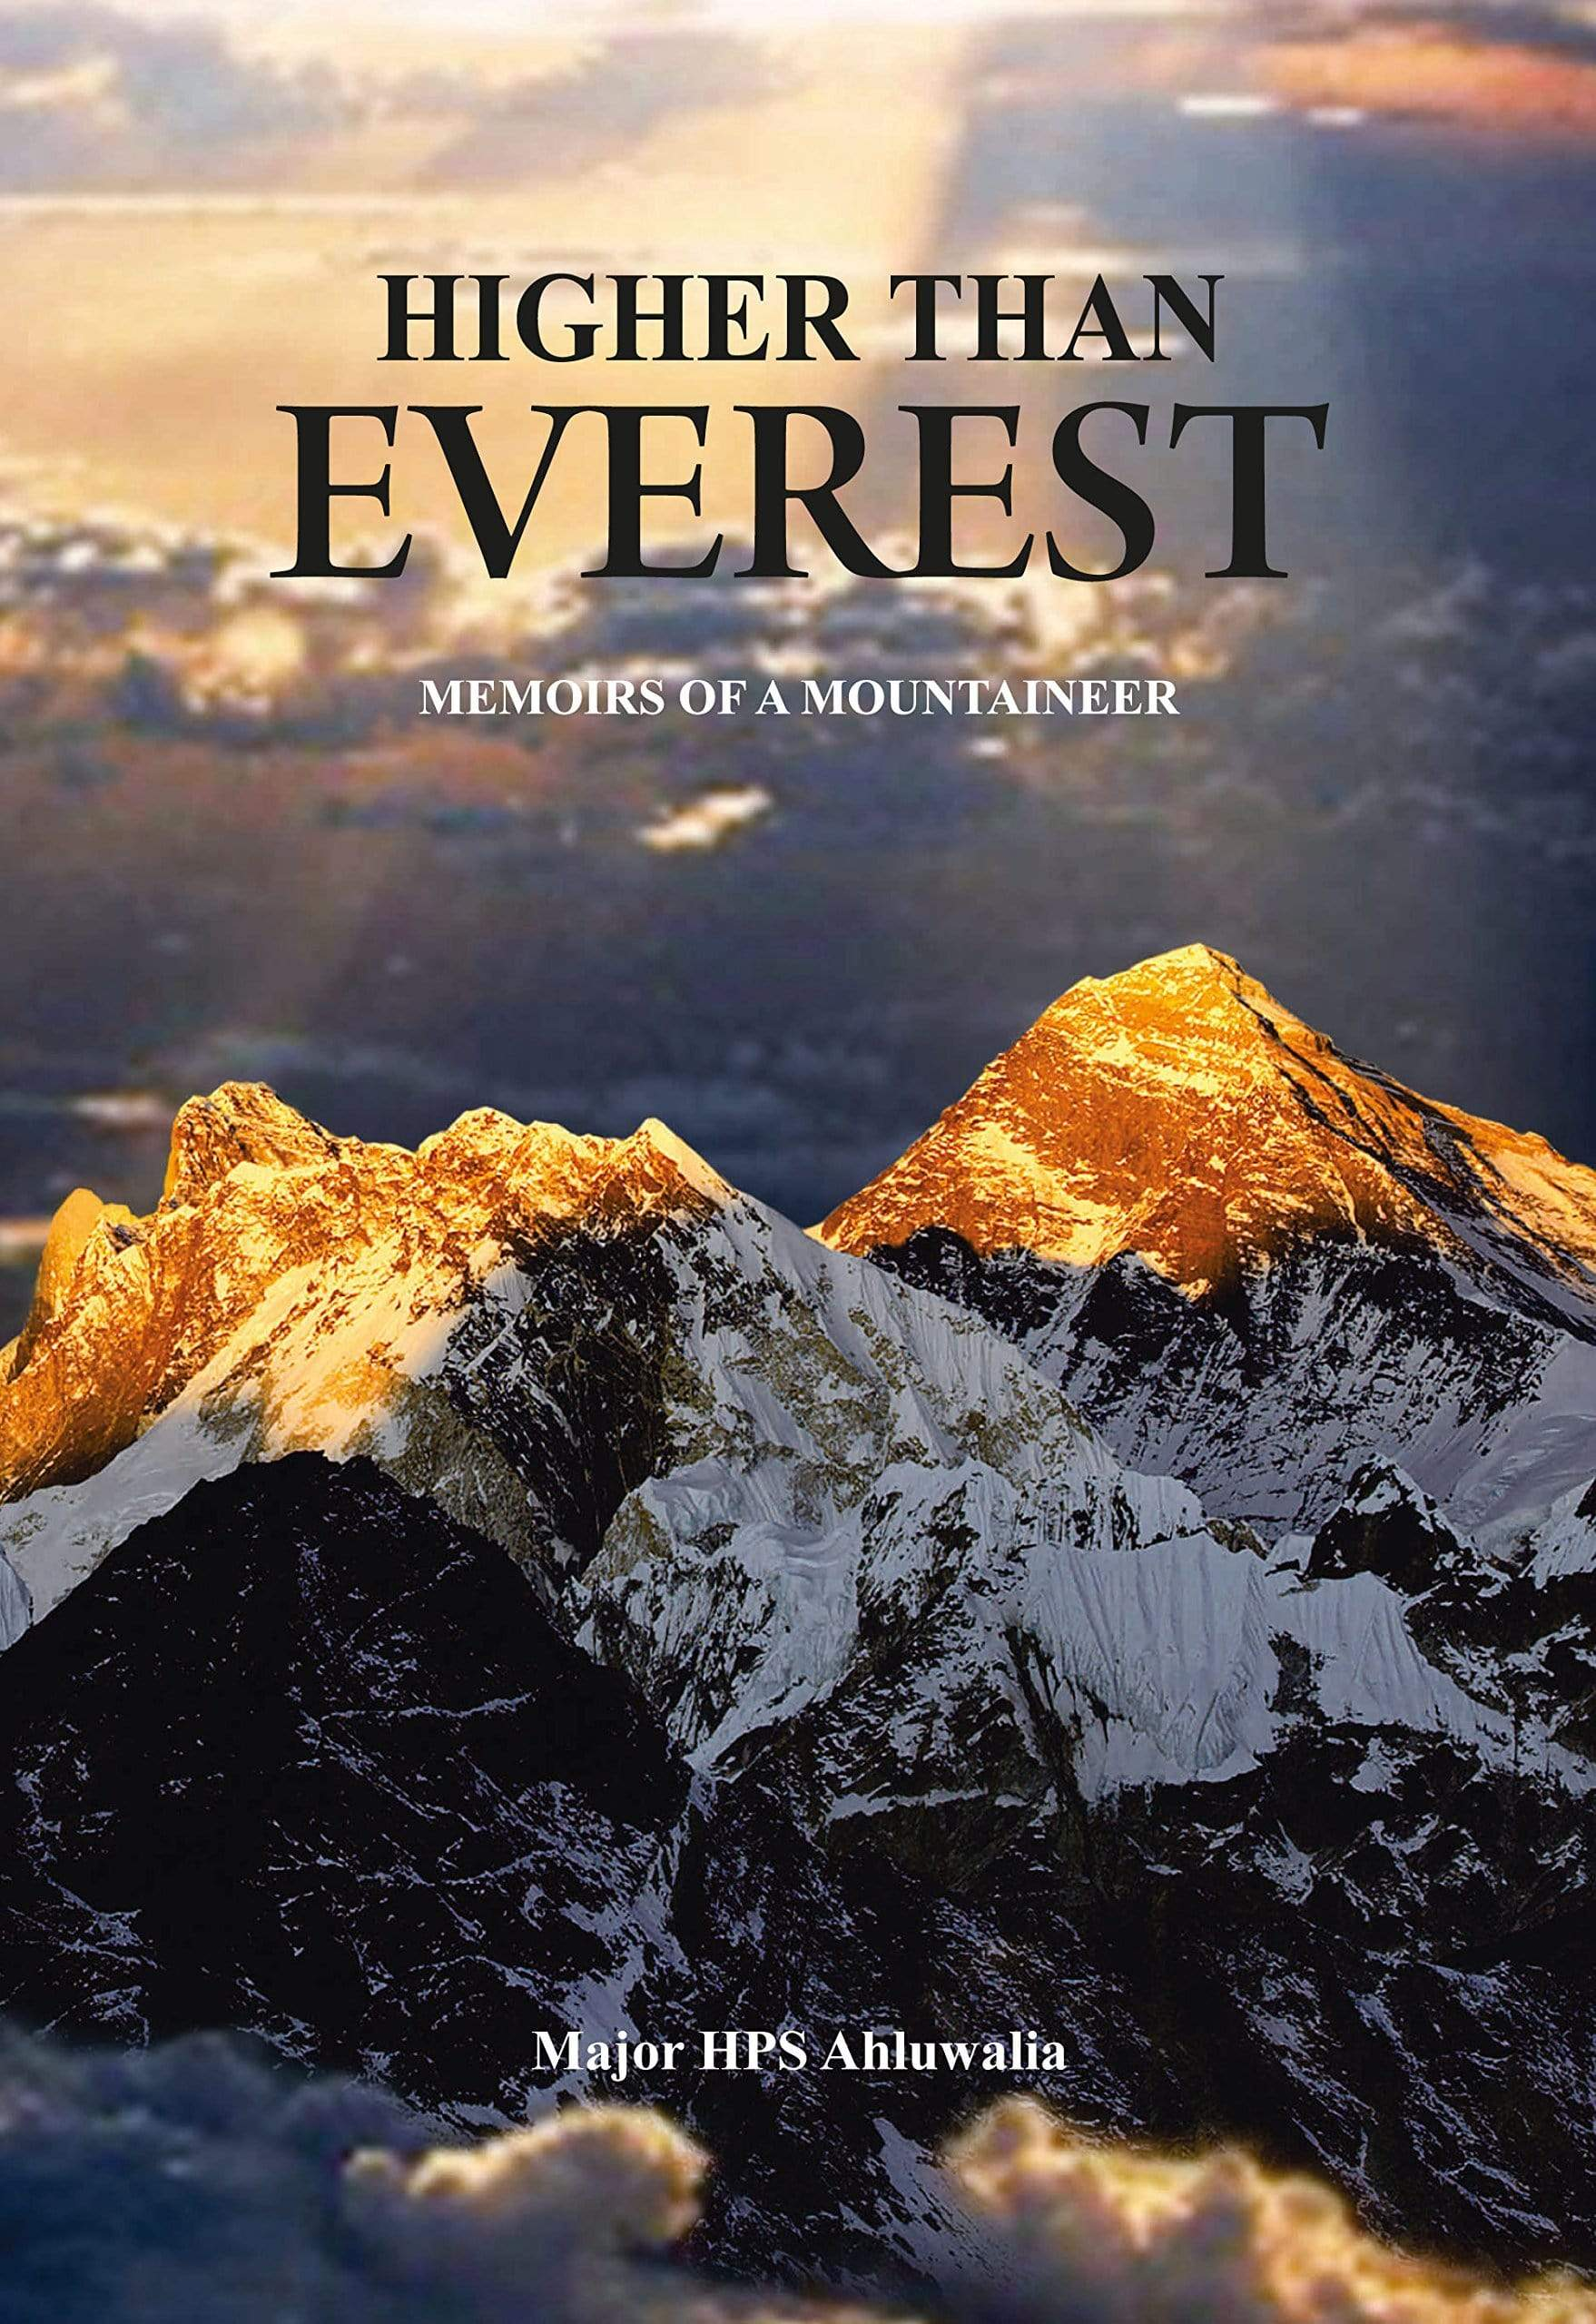 Higher Than Everest: Memoirs of a Mountaineer